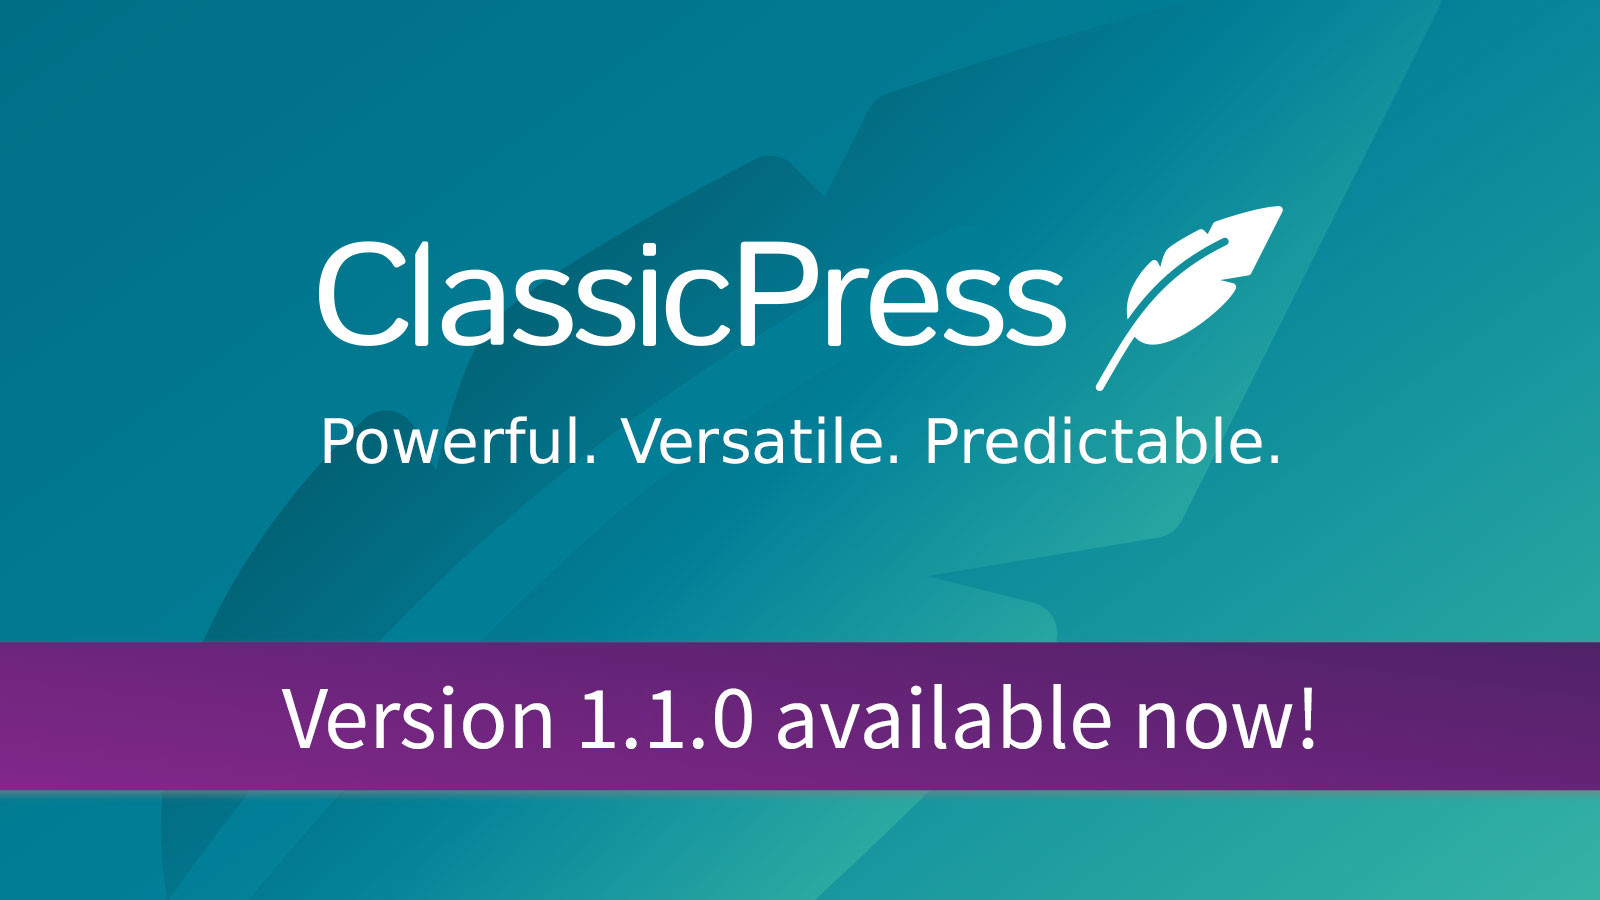 Introducing ClassicPress 1.1.0